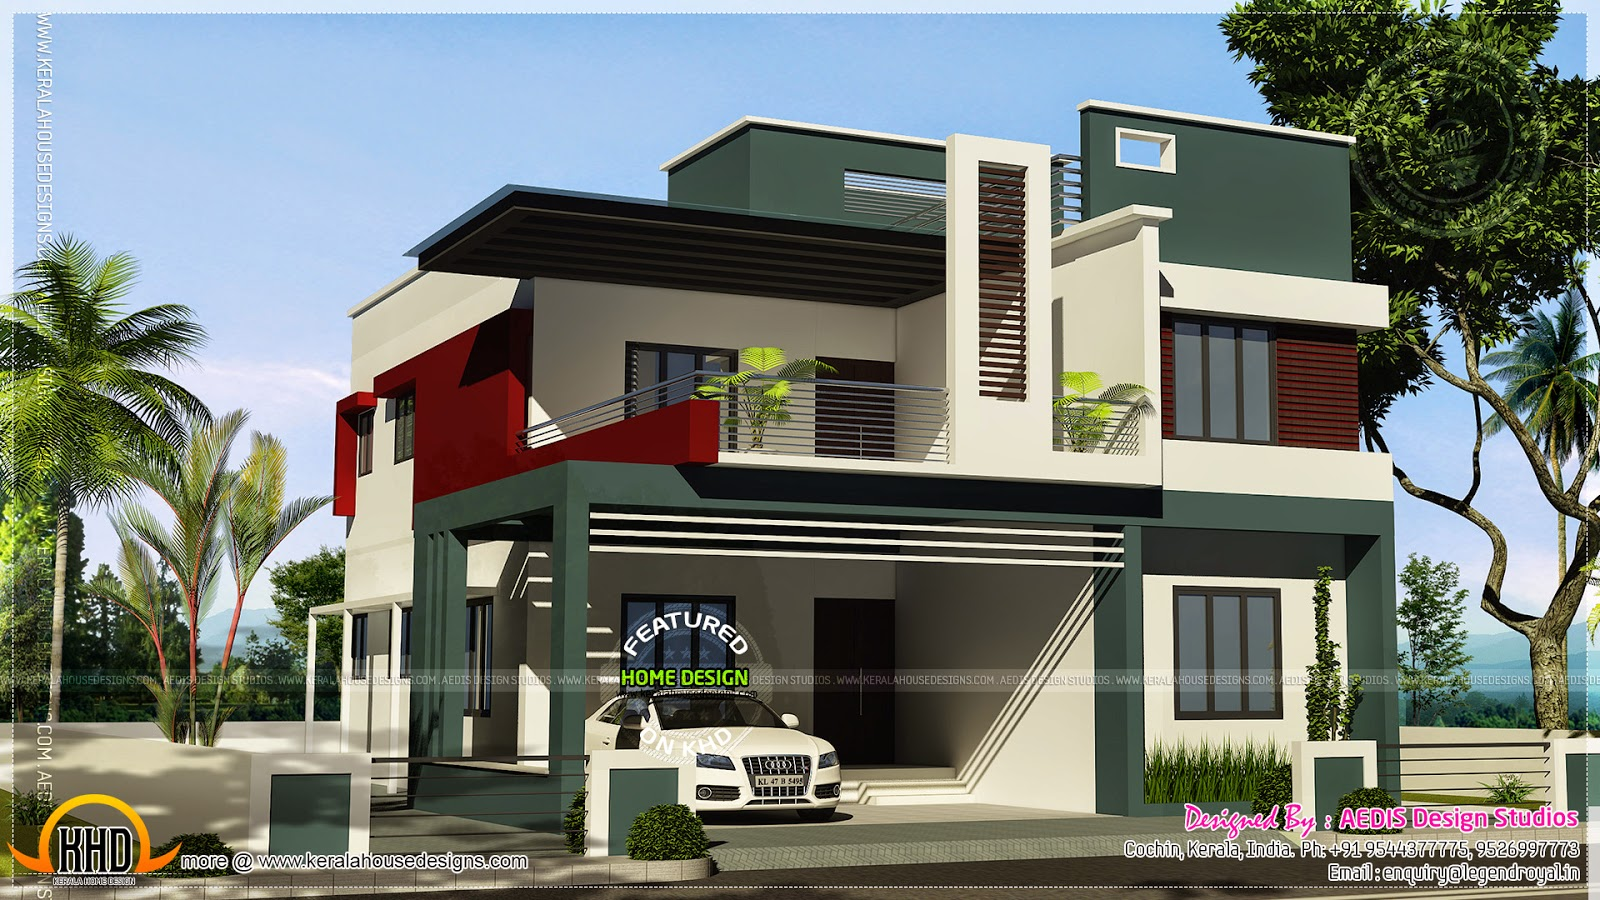 Duplex house plans south indian style home photo style for Duplex images india